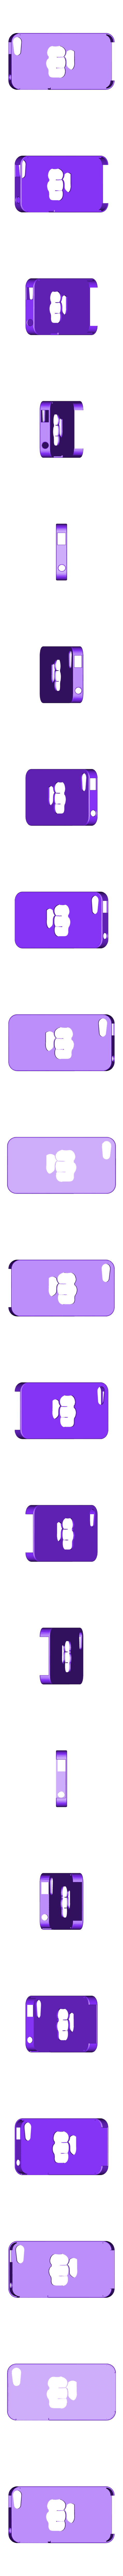 uploads-dc-f3-d7-90-c7-iphone_4s_pewdiepie_case.obj Download free OBJ file Pewdiepie Bro fist iPhone4/4s case • 3D print template, Mathi_